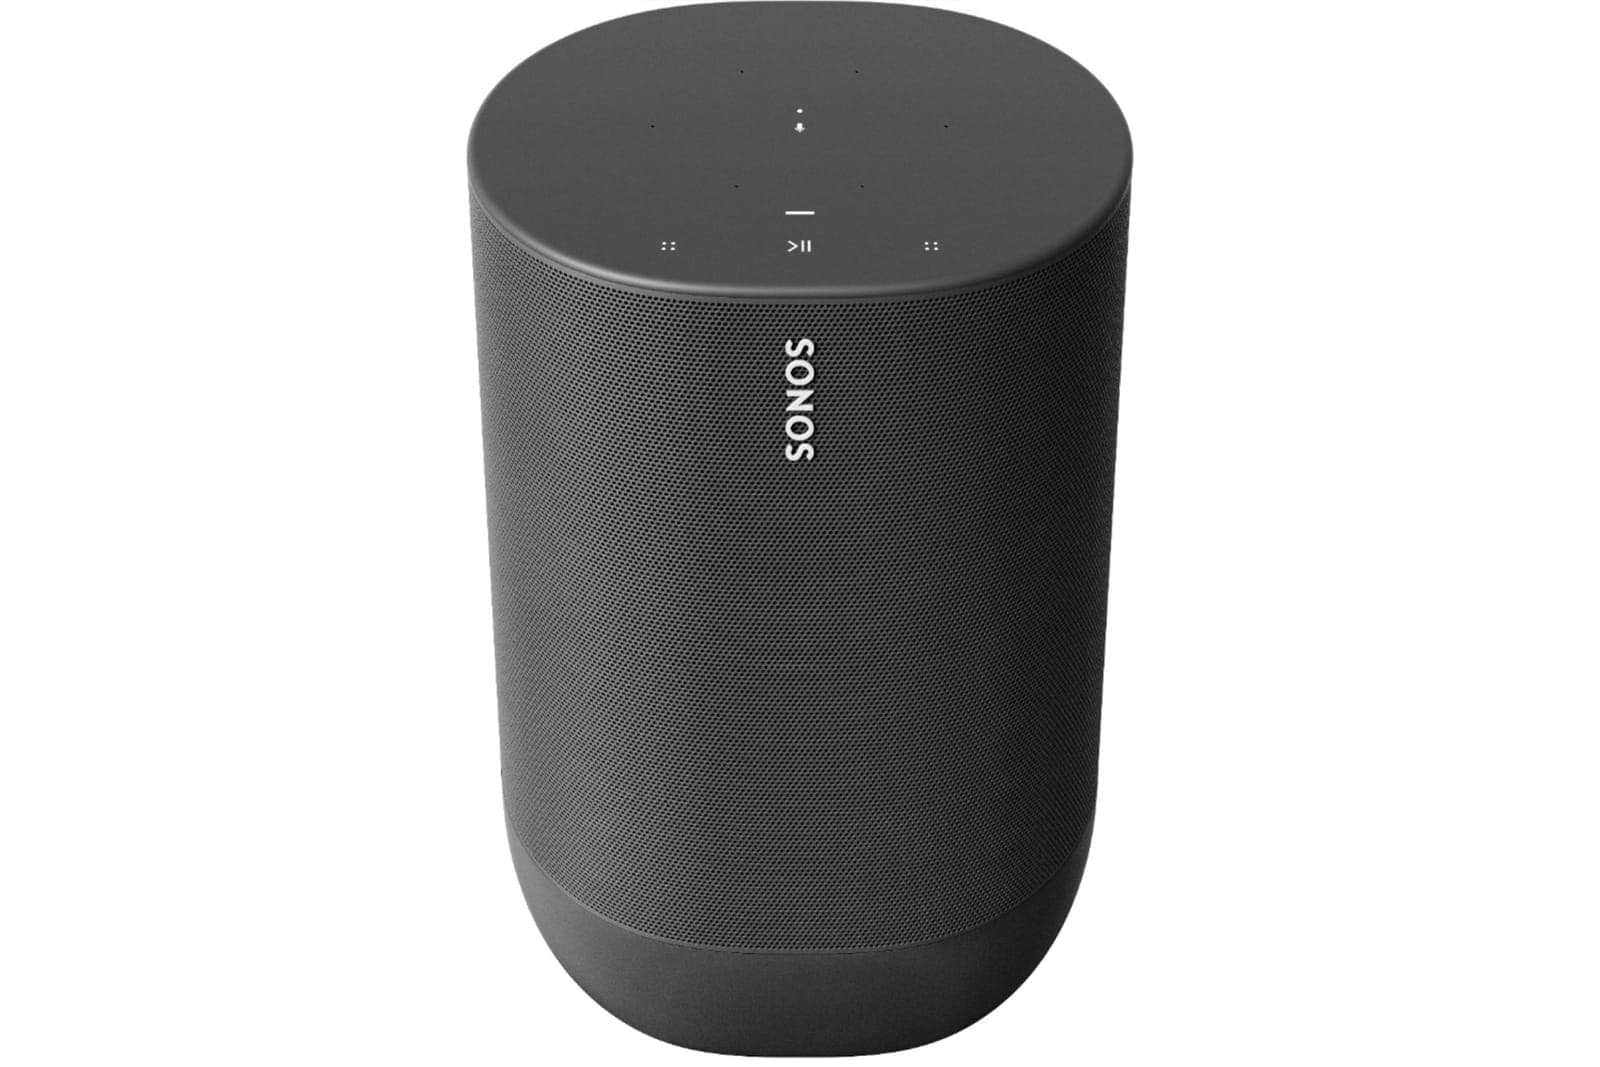 Sonos' leaked portable speaker automatically tunes its sound